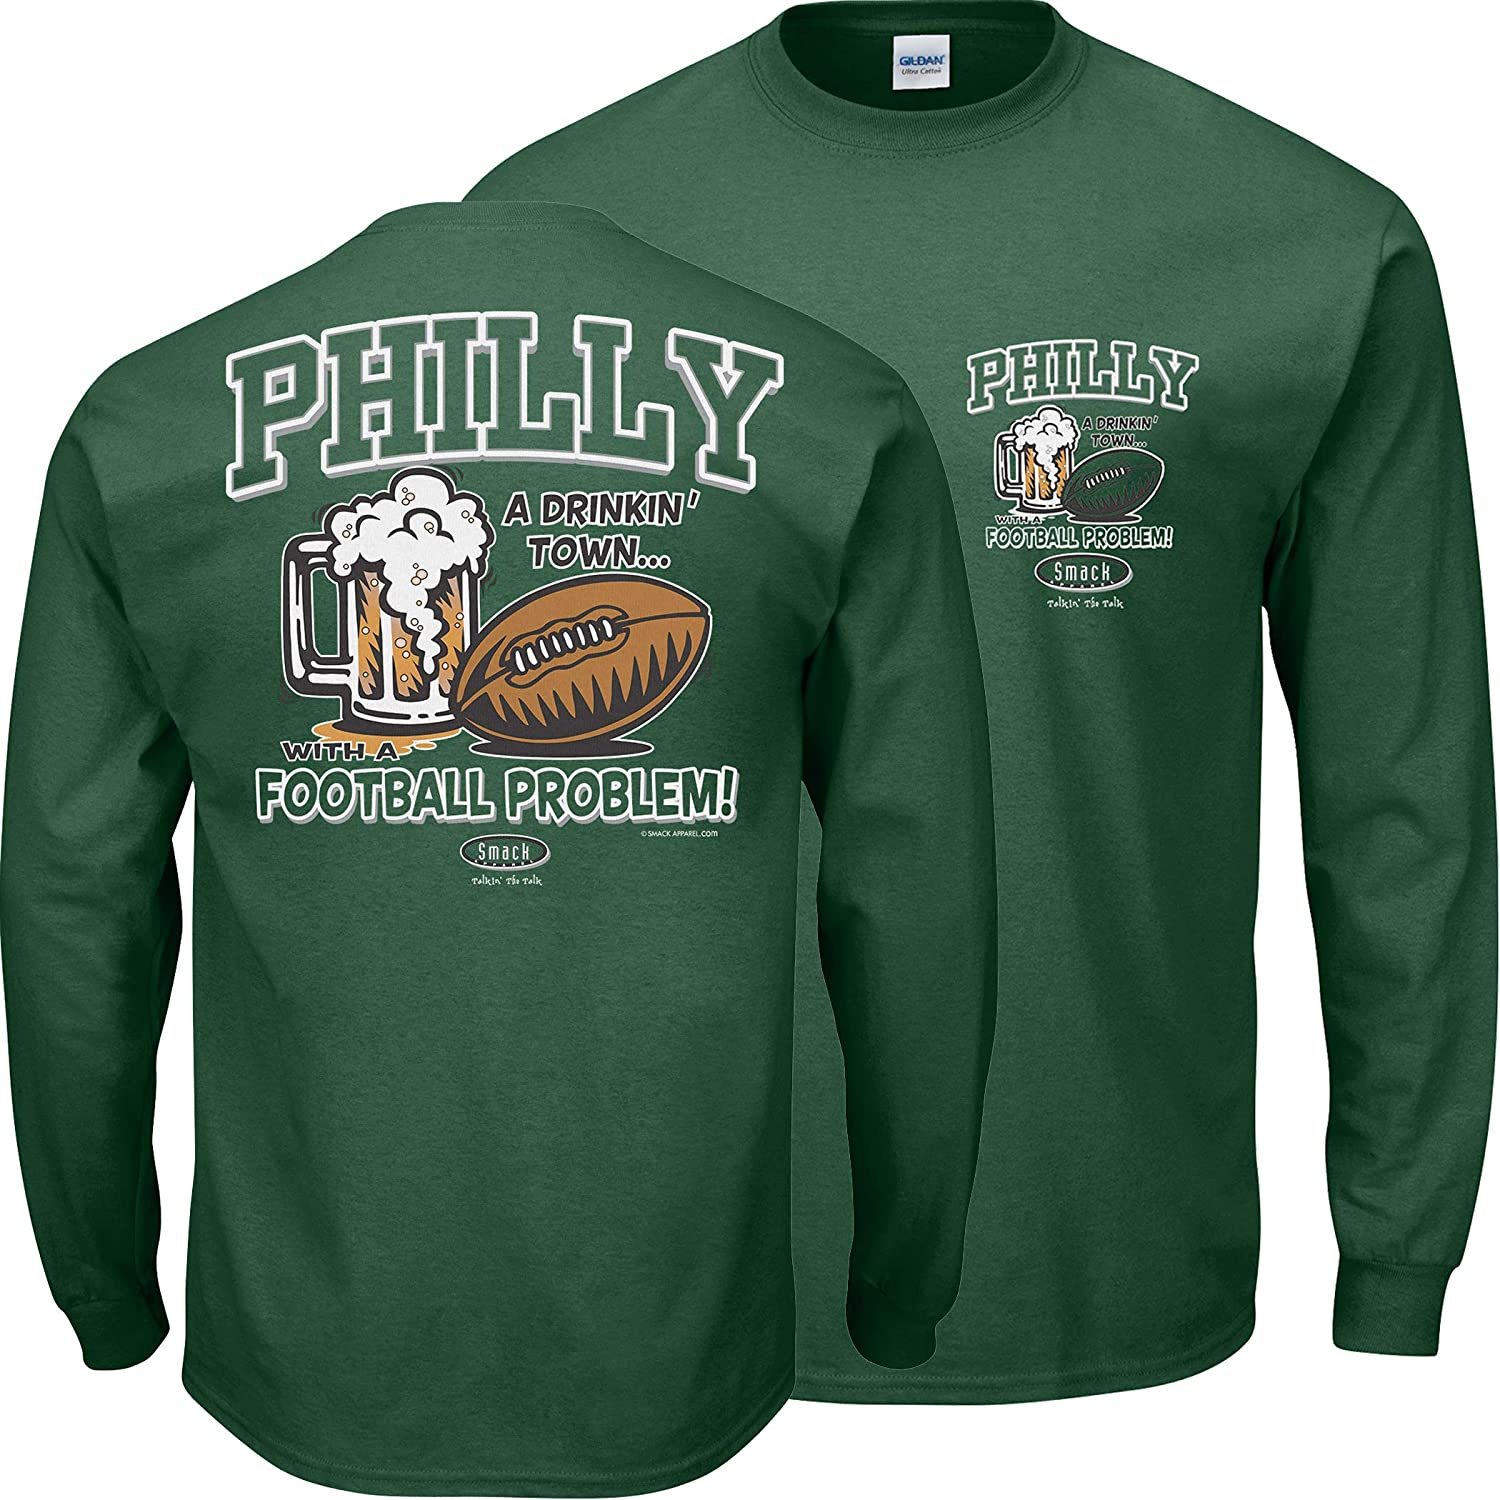 Smack Apparel Financial sales sale Philadelphia Genuine Free Shipping Football Fans. w Town Drinking Philly